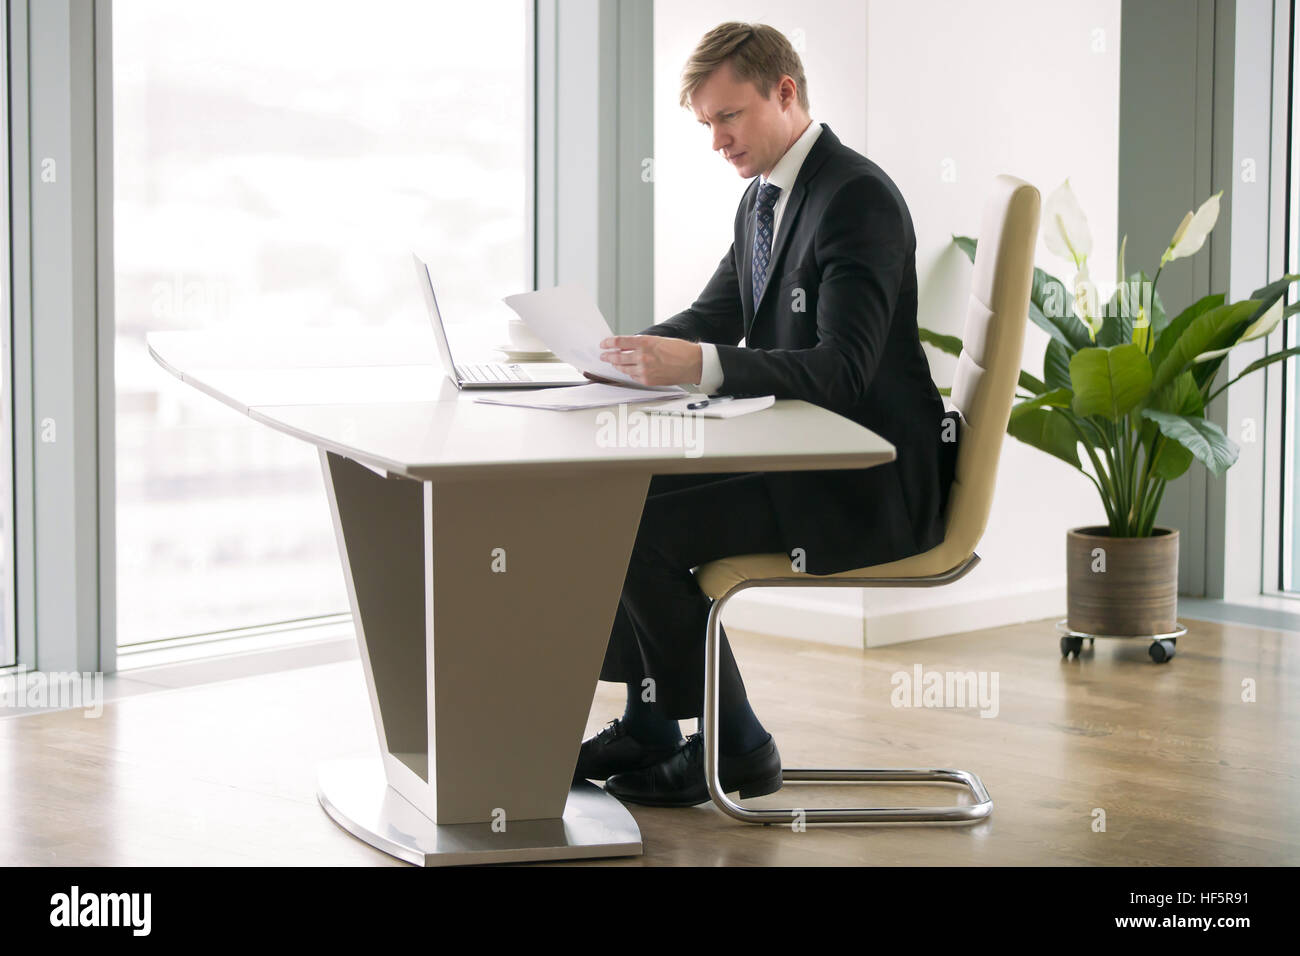 Businessman working with laptop and paper at the modern desk - Stock Image